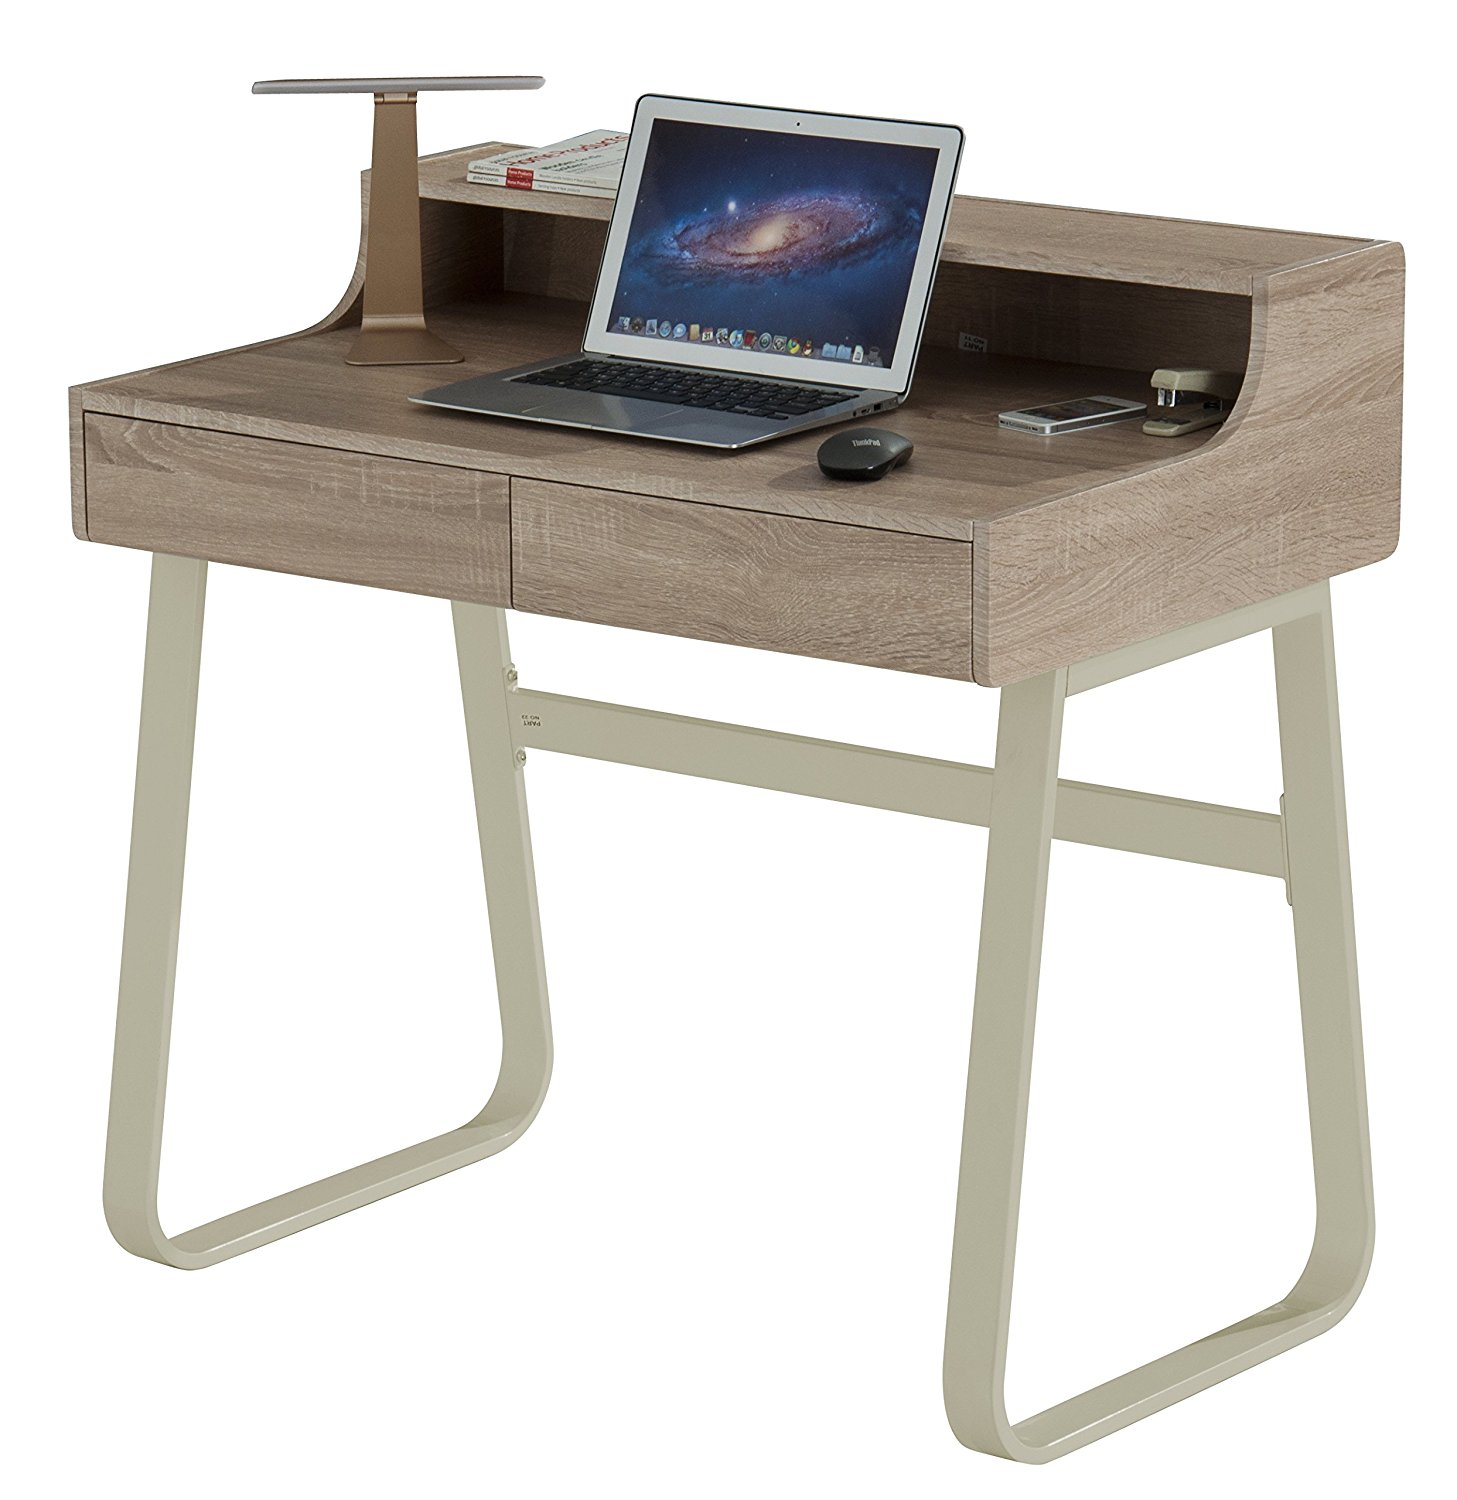 ProHT Modern Office Computer Desk,Small Desk : Writing/PC/Laptop & Writing Table/Workstation, CARB Certified (Sonoma Oak and Ivory 05006-A)